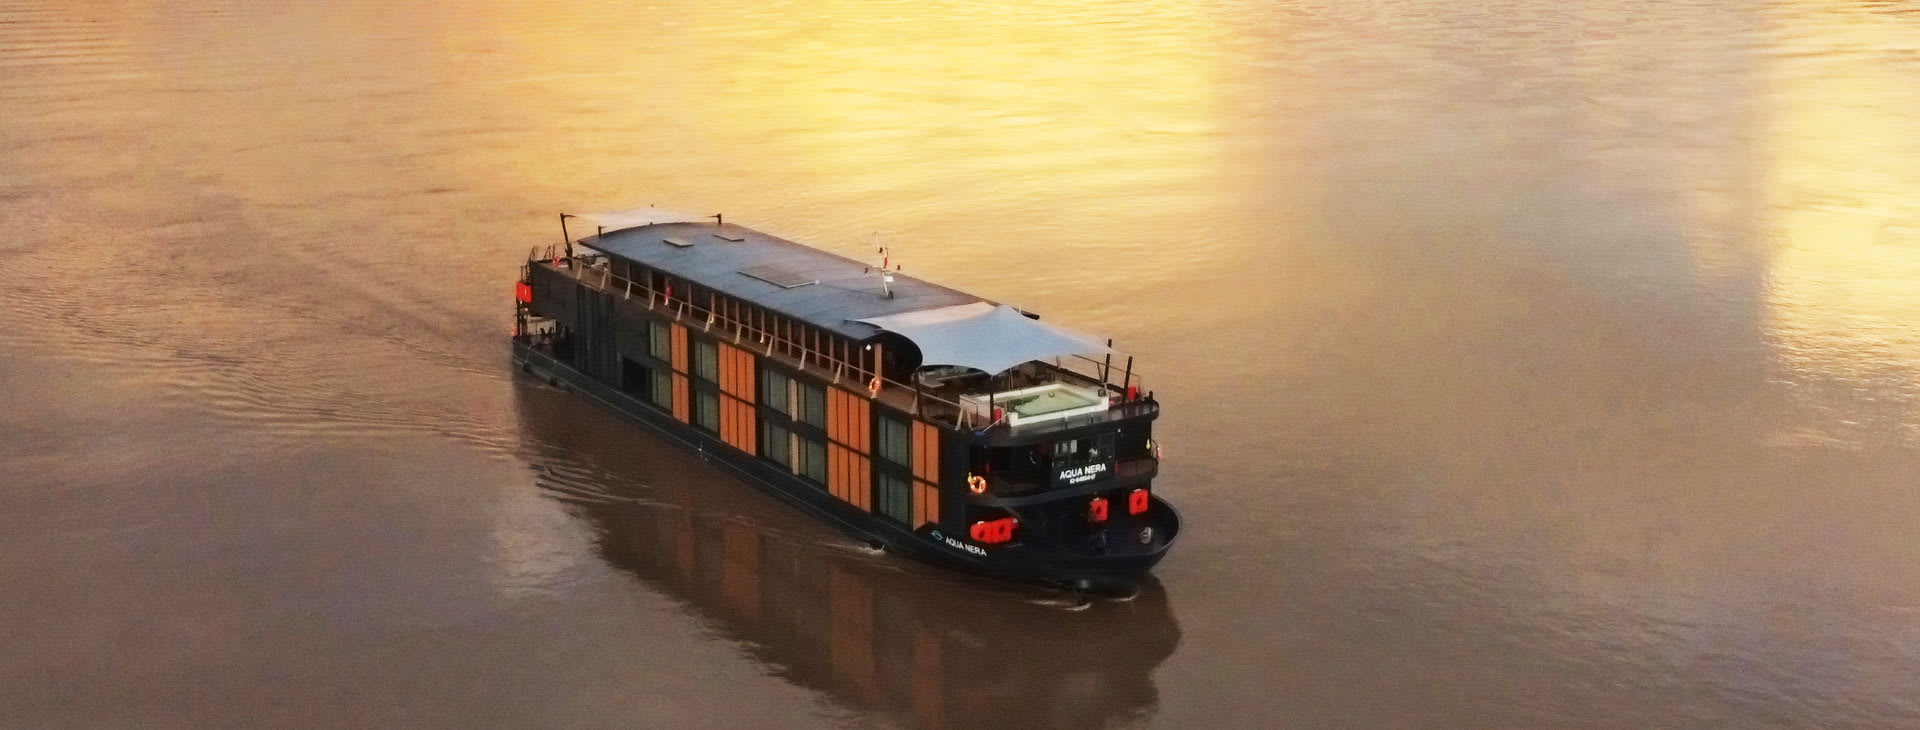 Ship on the Amazon river at sunset